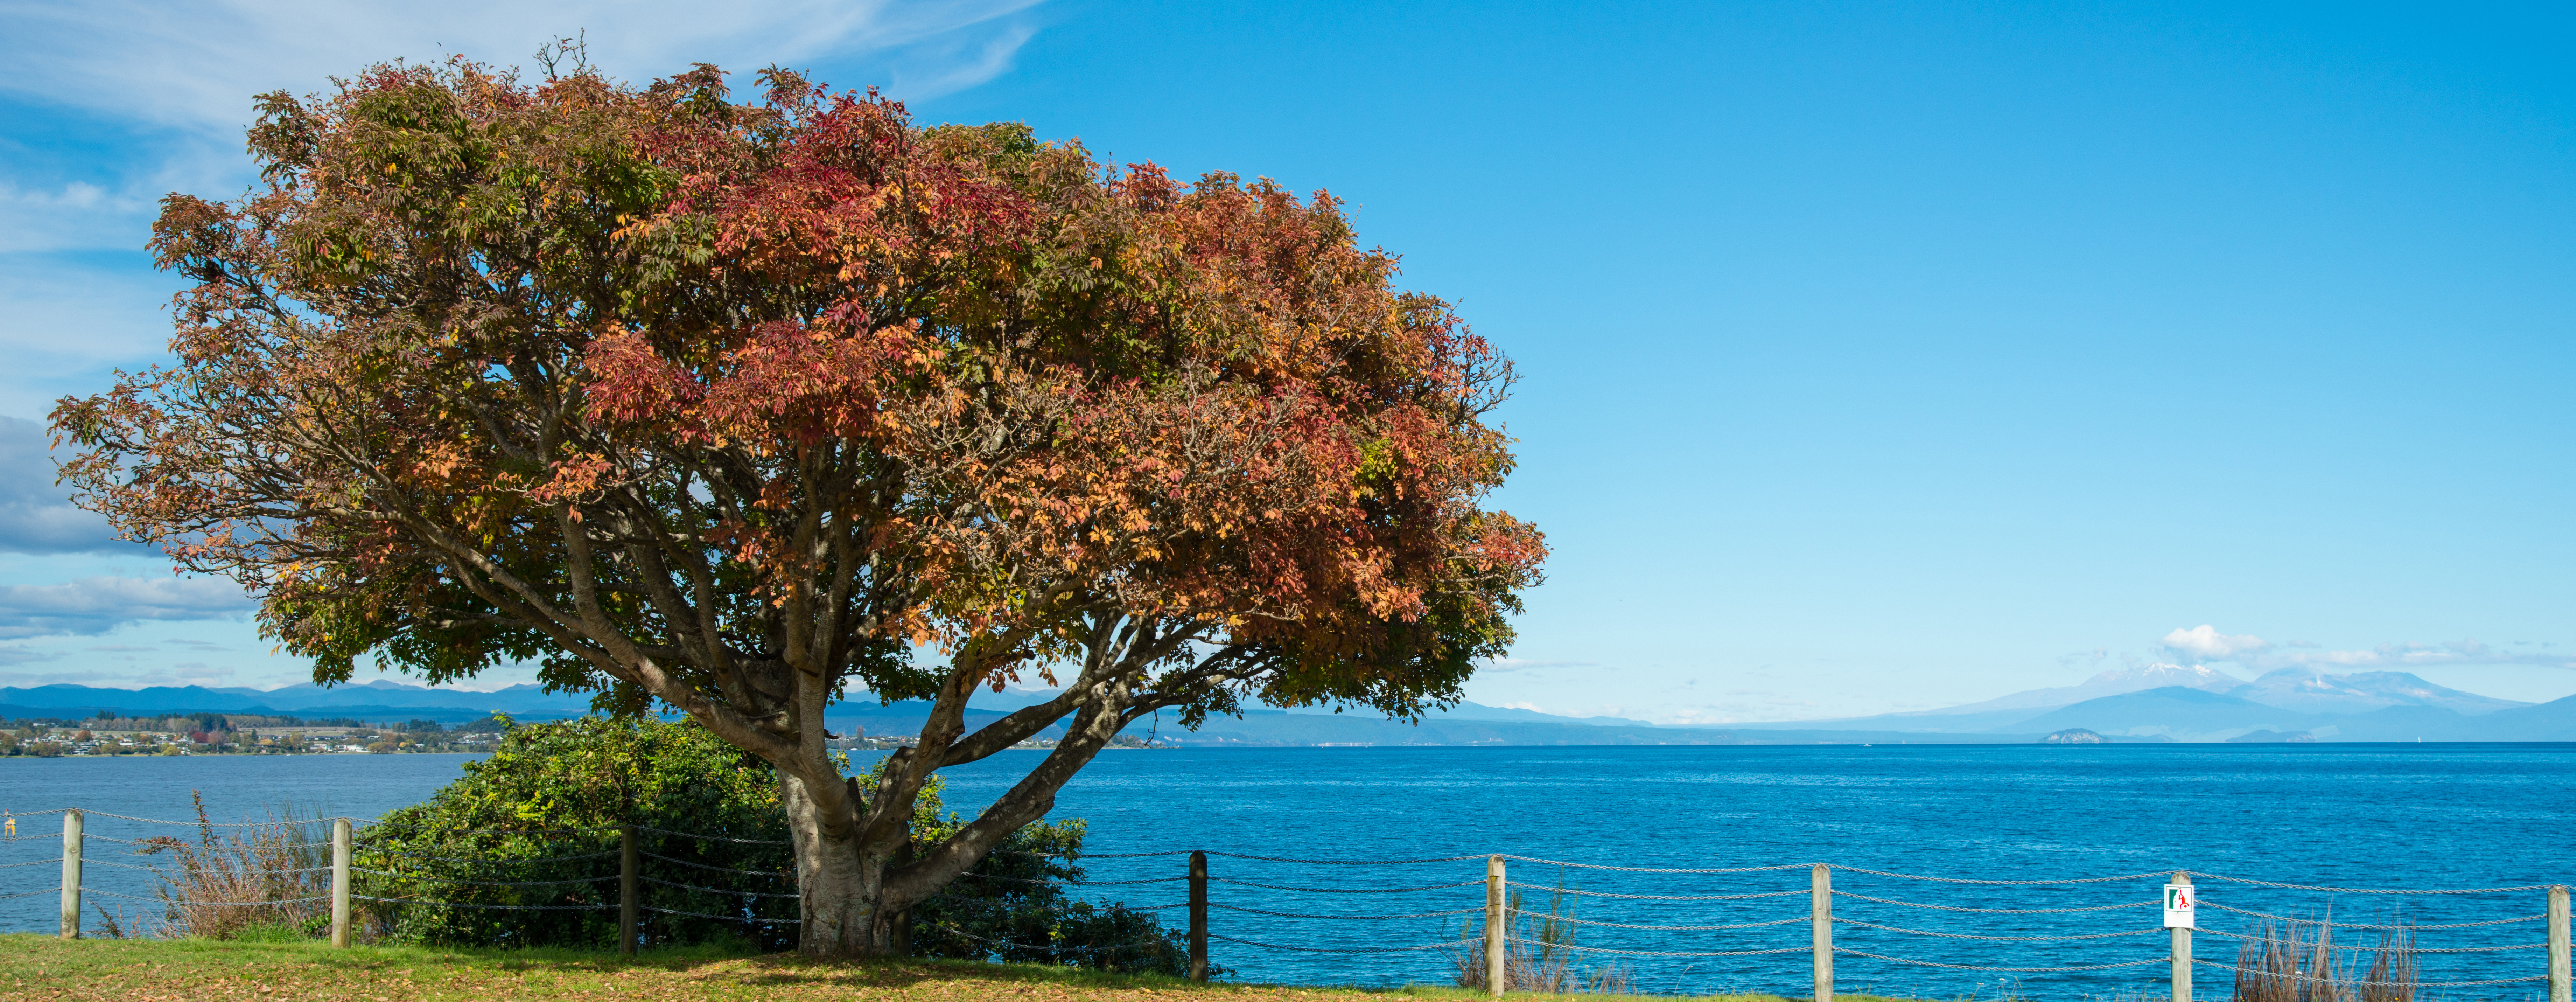 lake taupo 1800x700